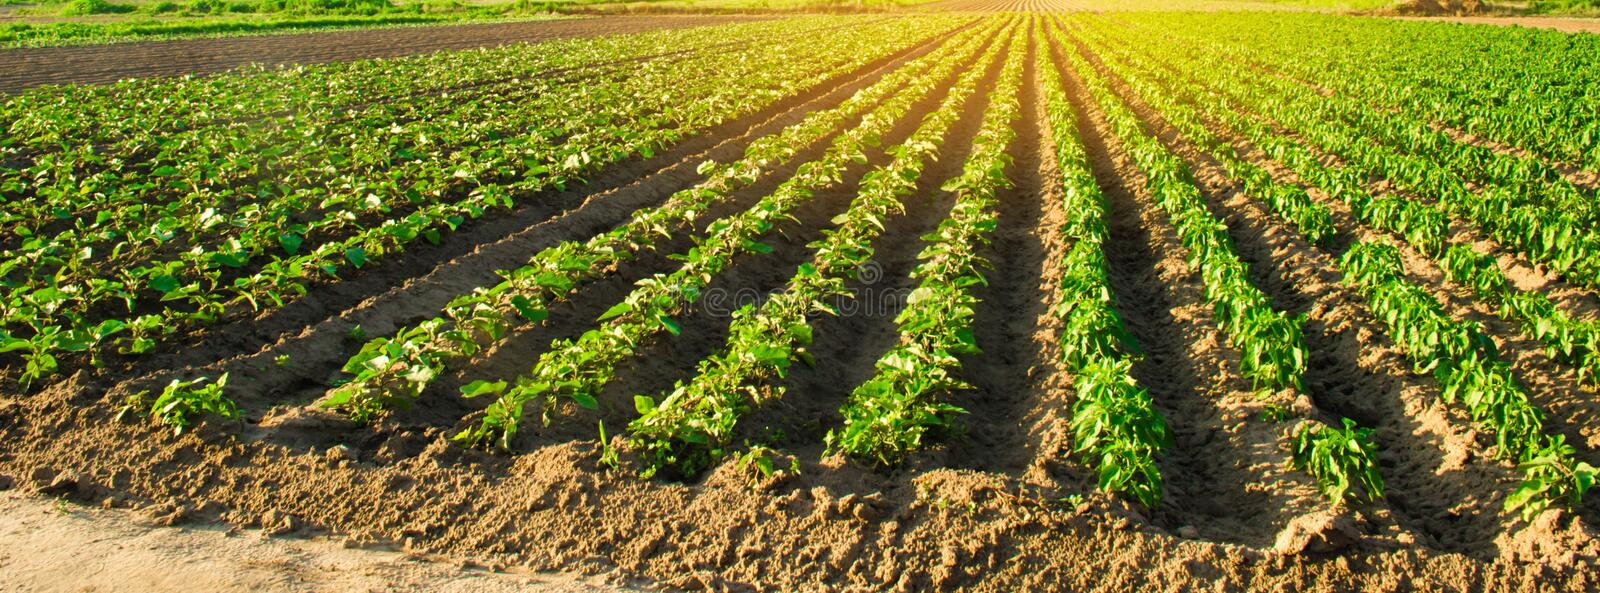 Young eggplants grow in the field. vegetable rows. Agriculture, farming. farmlands. Landscape with agricultural land. banner. Selective focus stock photo